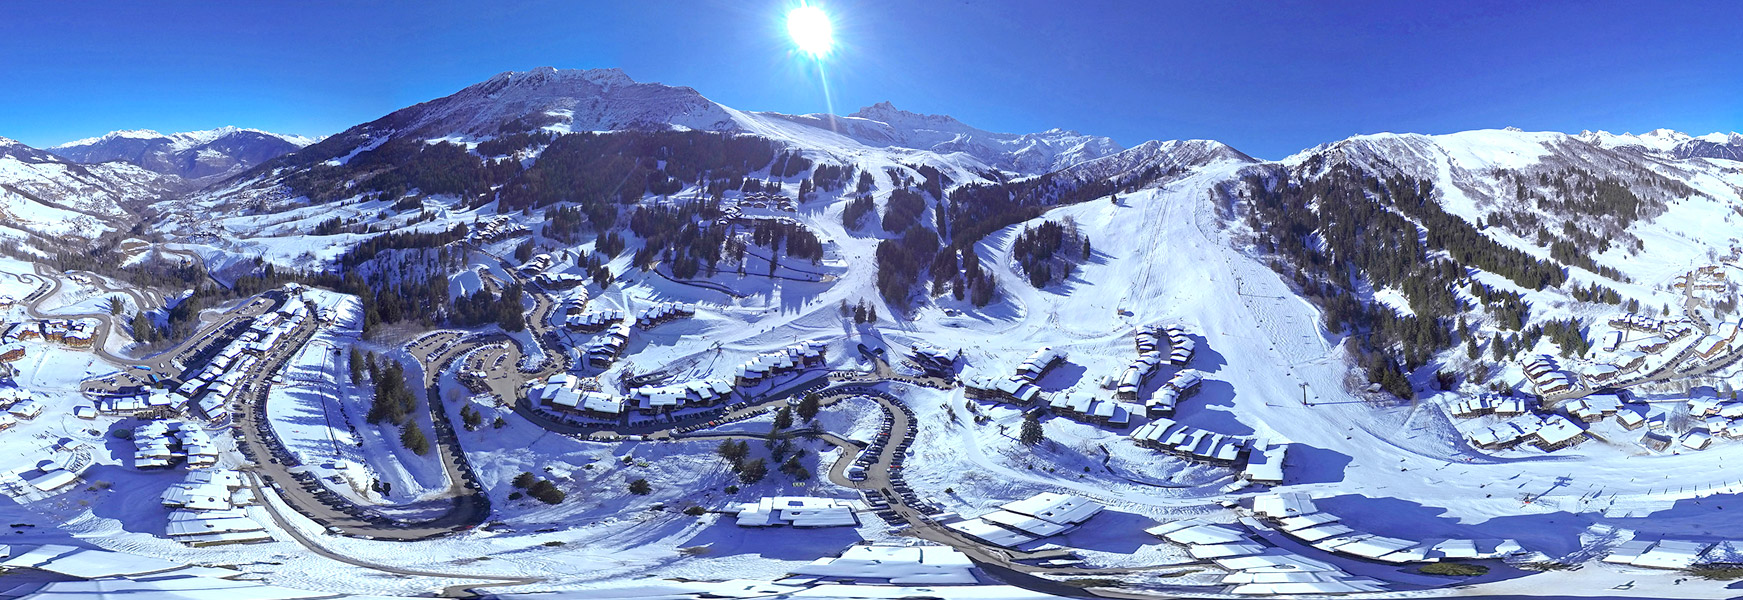 Location Ski Intersport Valmorel